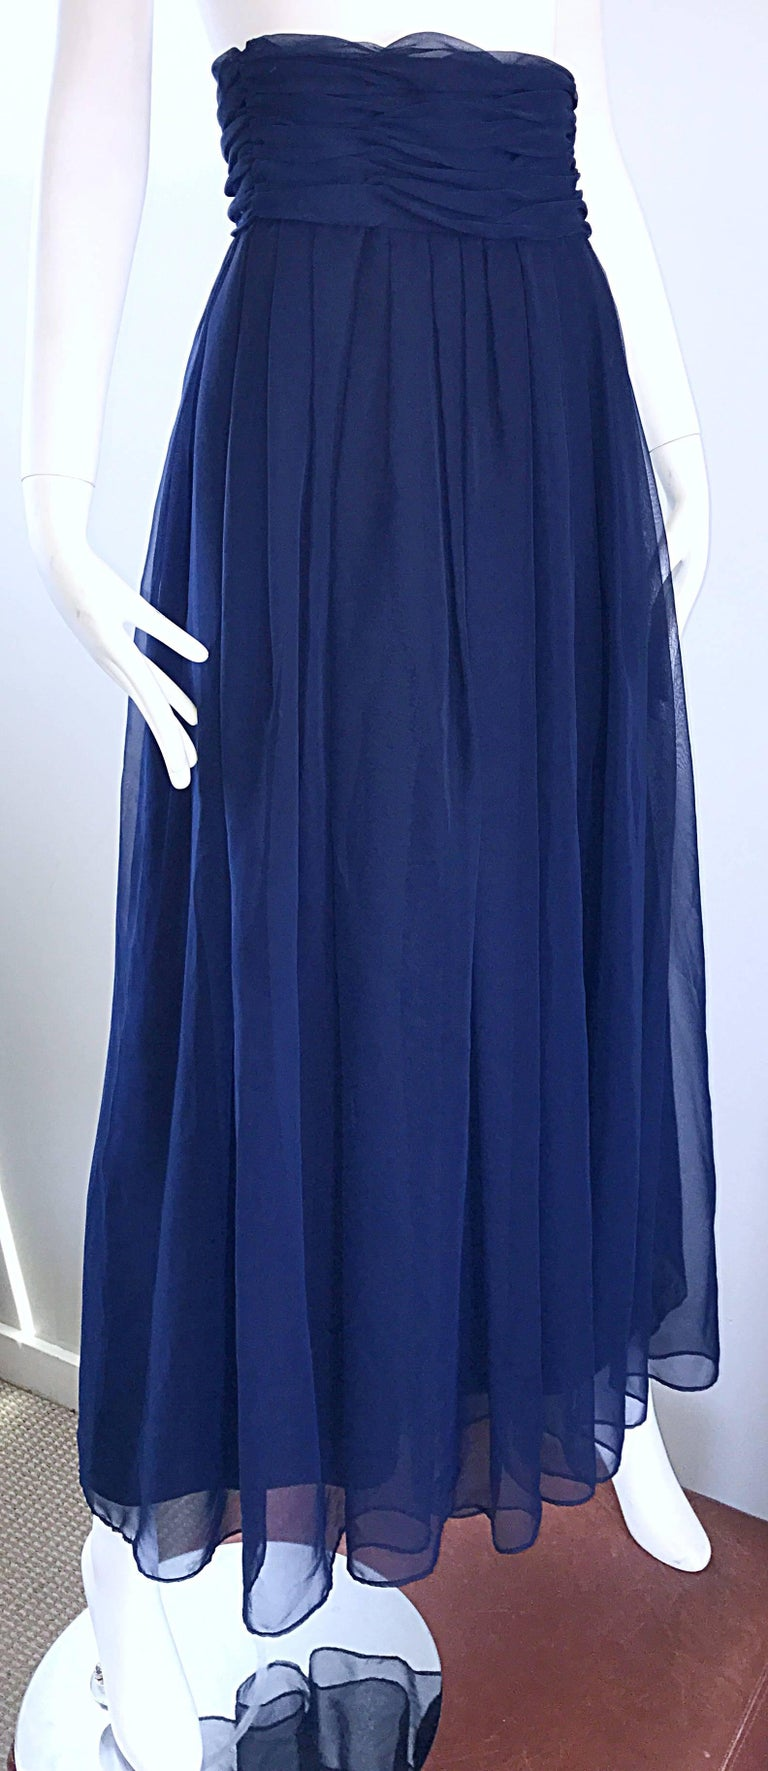 Chic Vintage Victor Costa High Waisted Navy Blue Chiffon